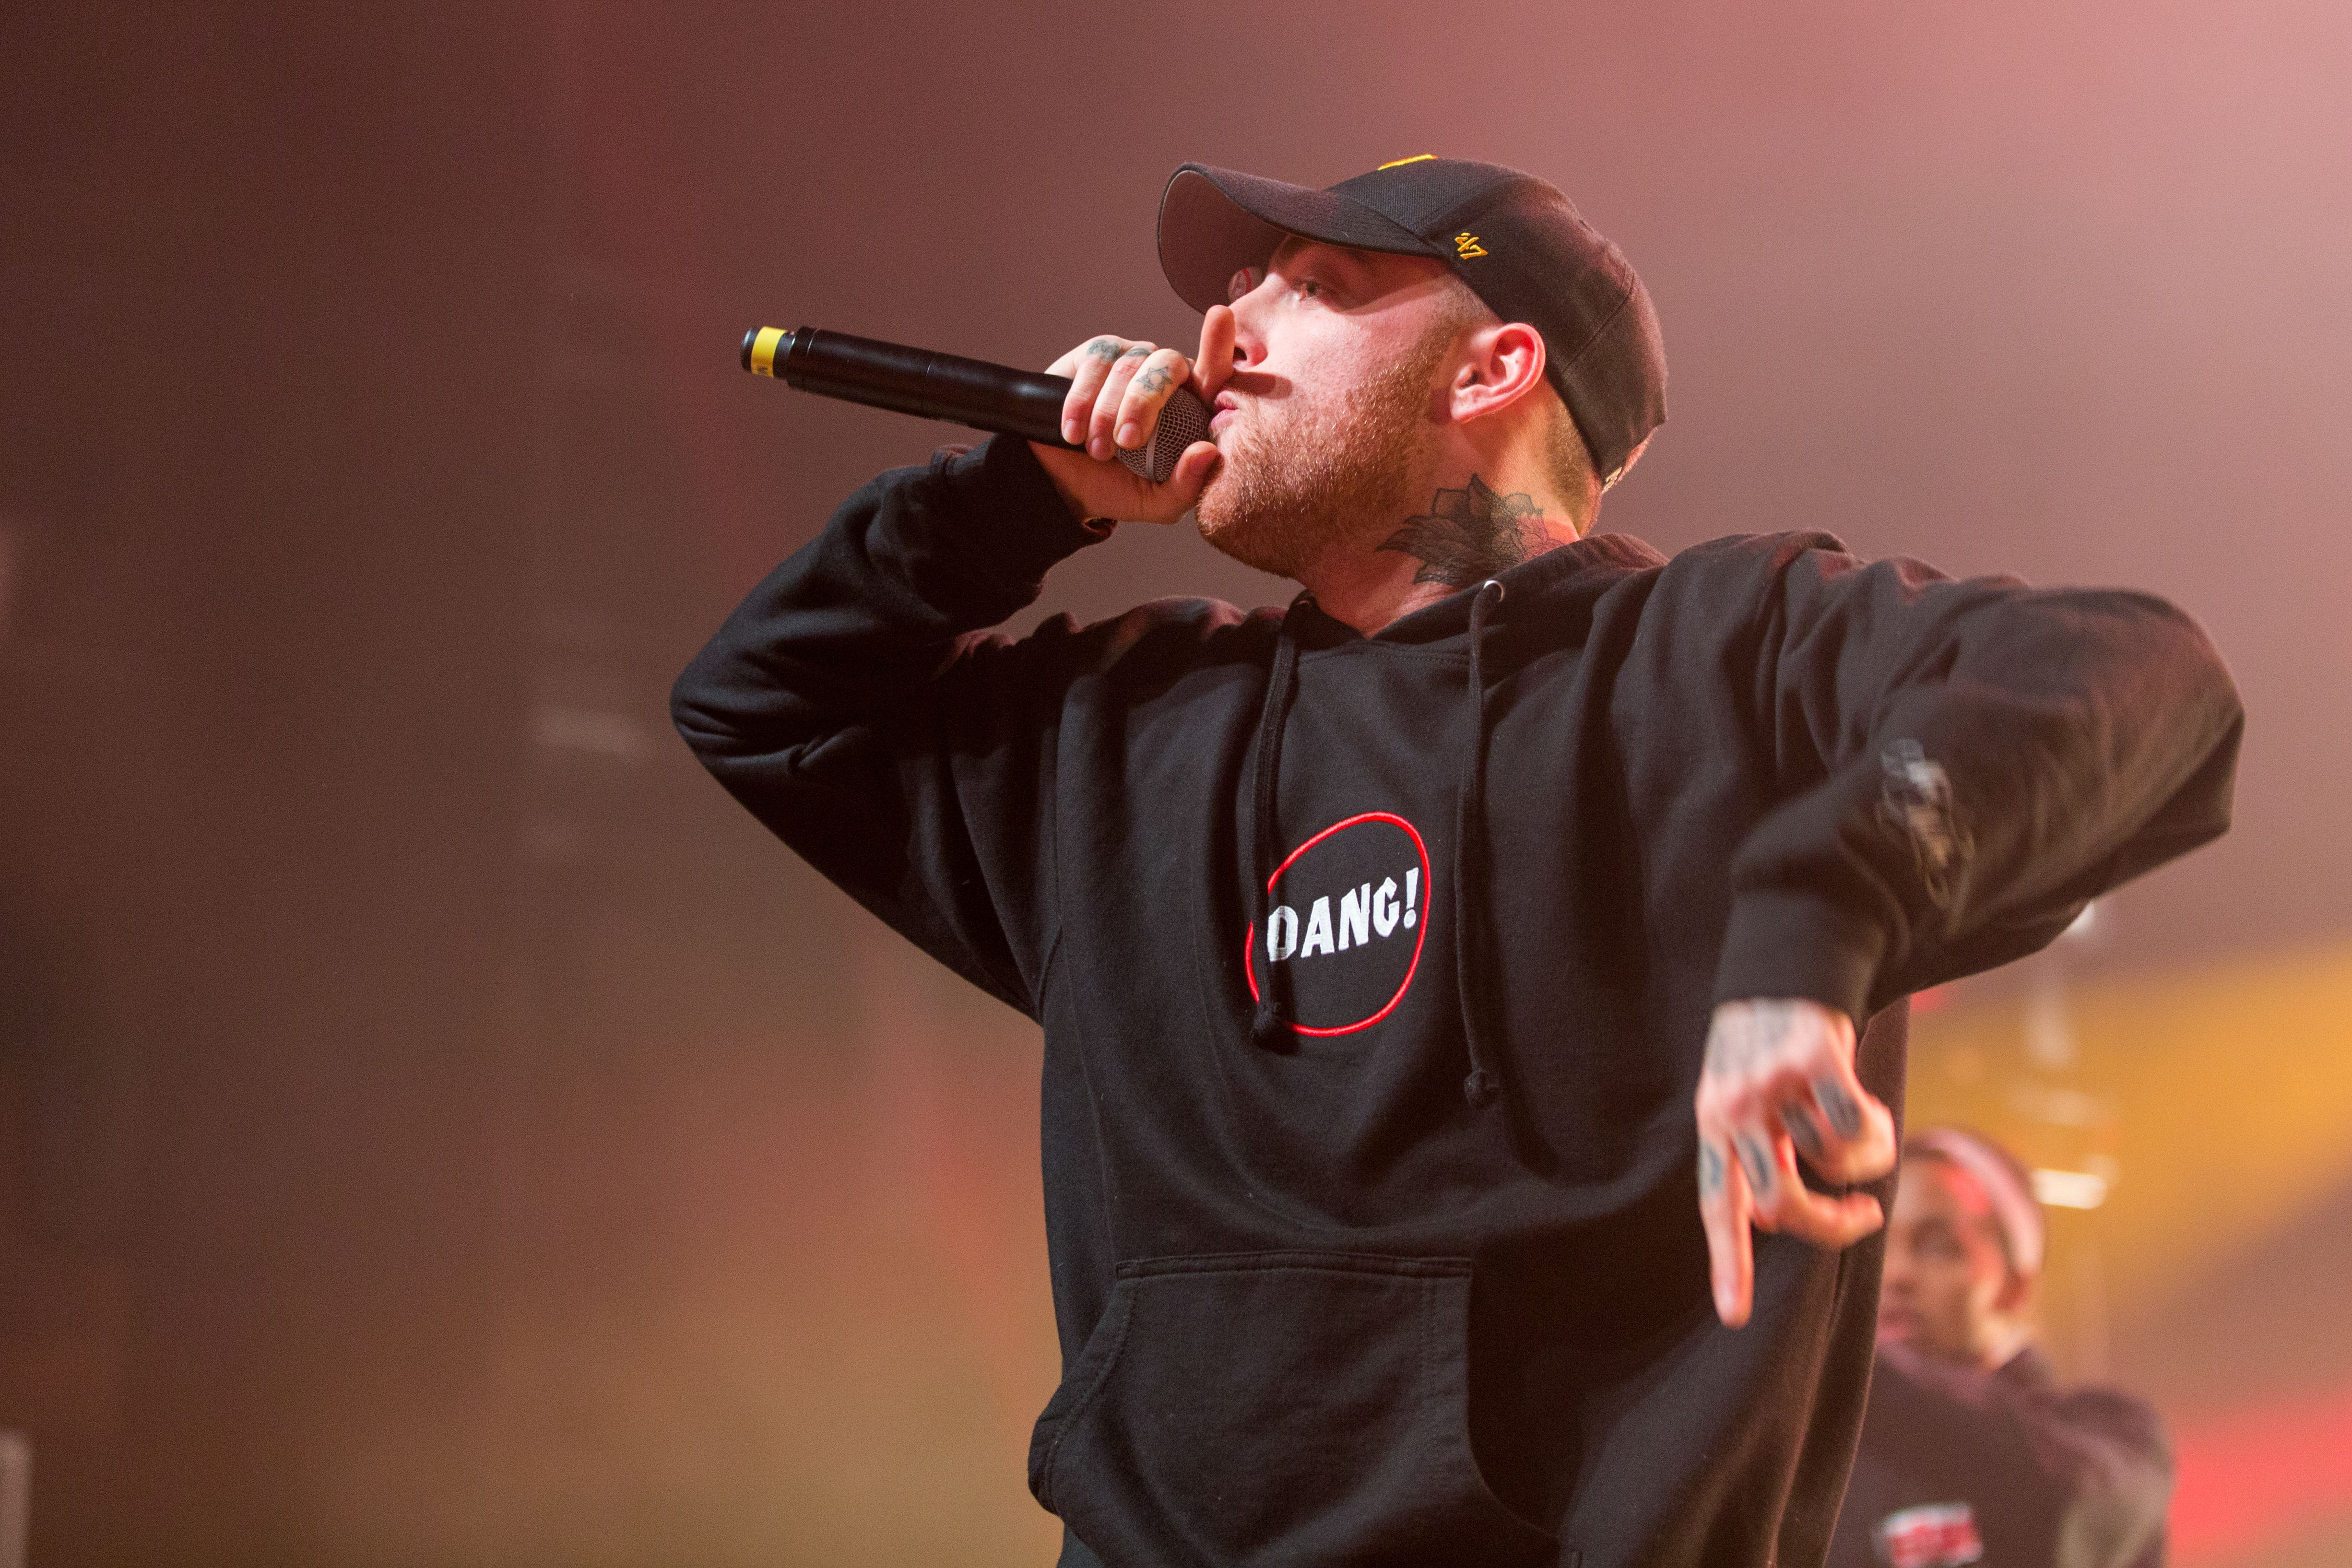 Mac Miller performs at the Orpheum Theatre in Madison, Wisc., in Oct. 2016.